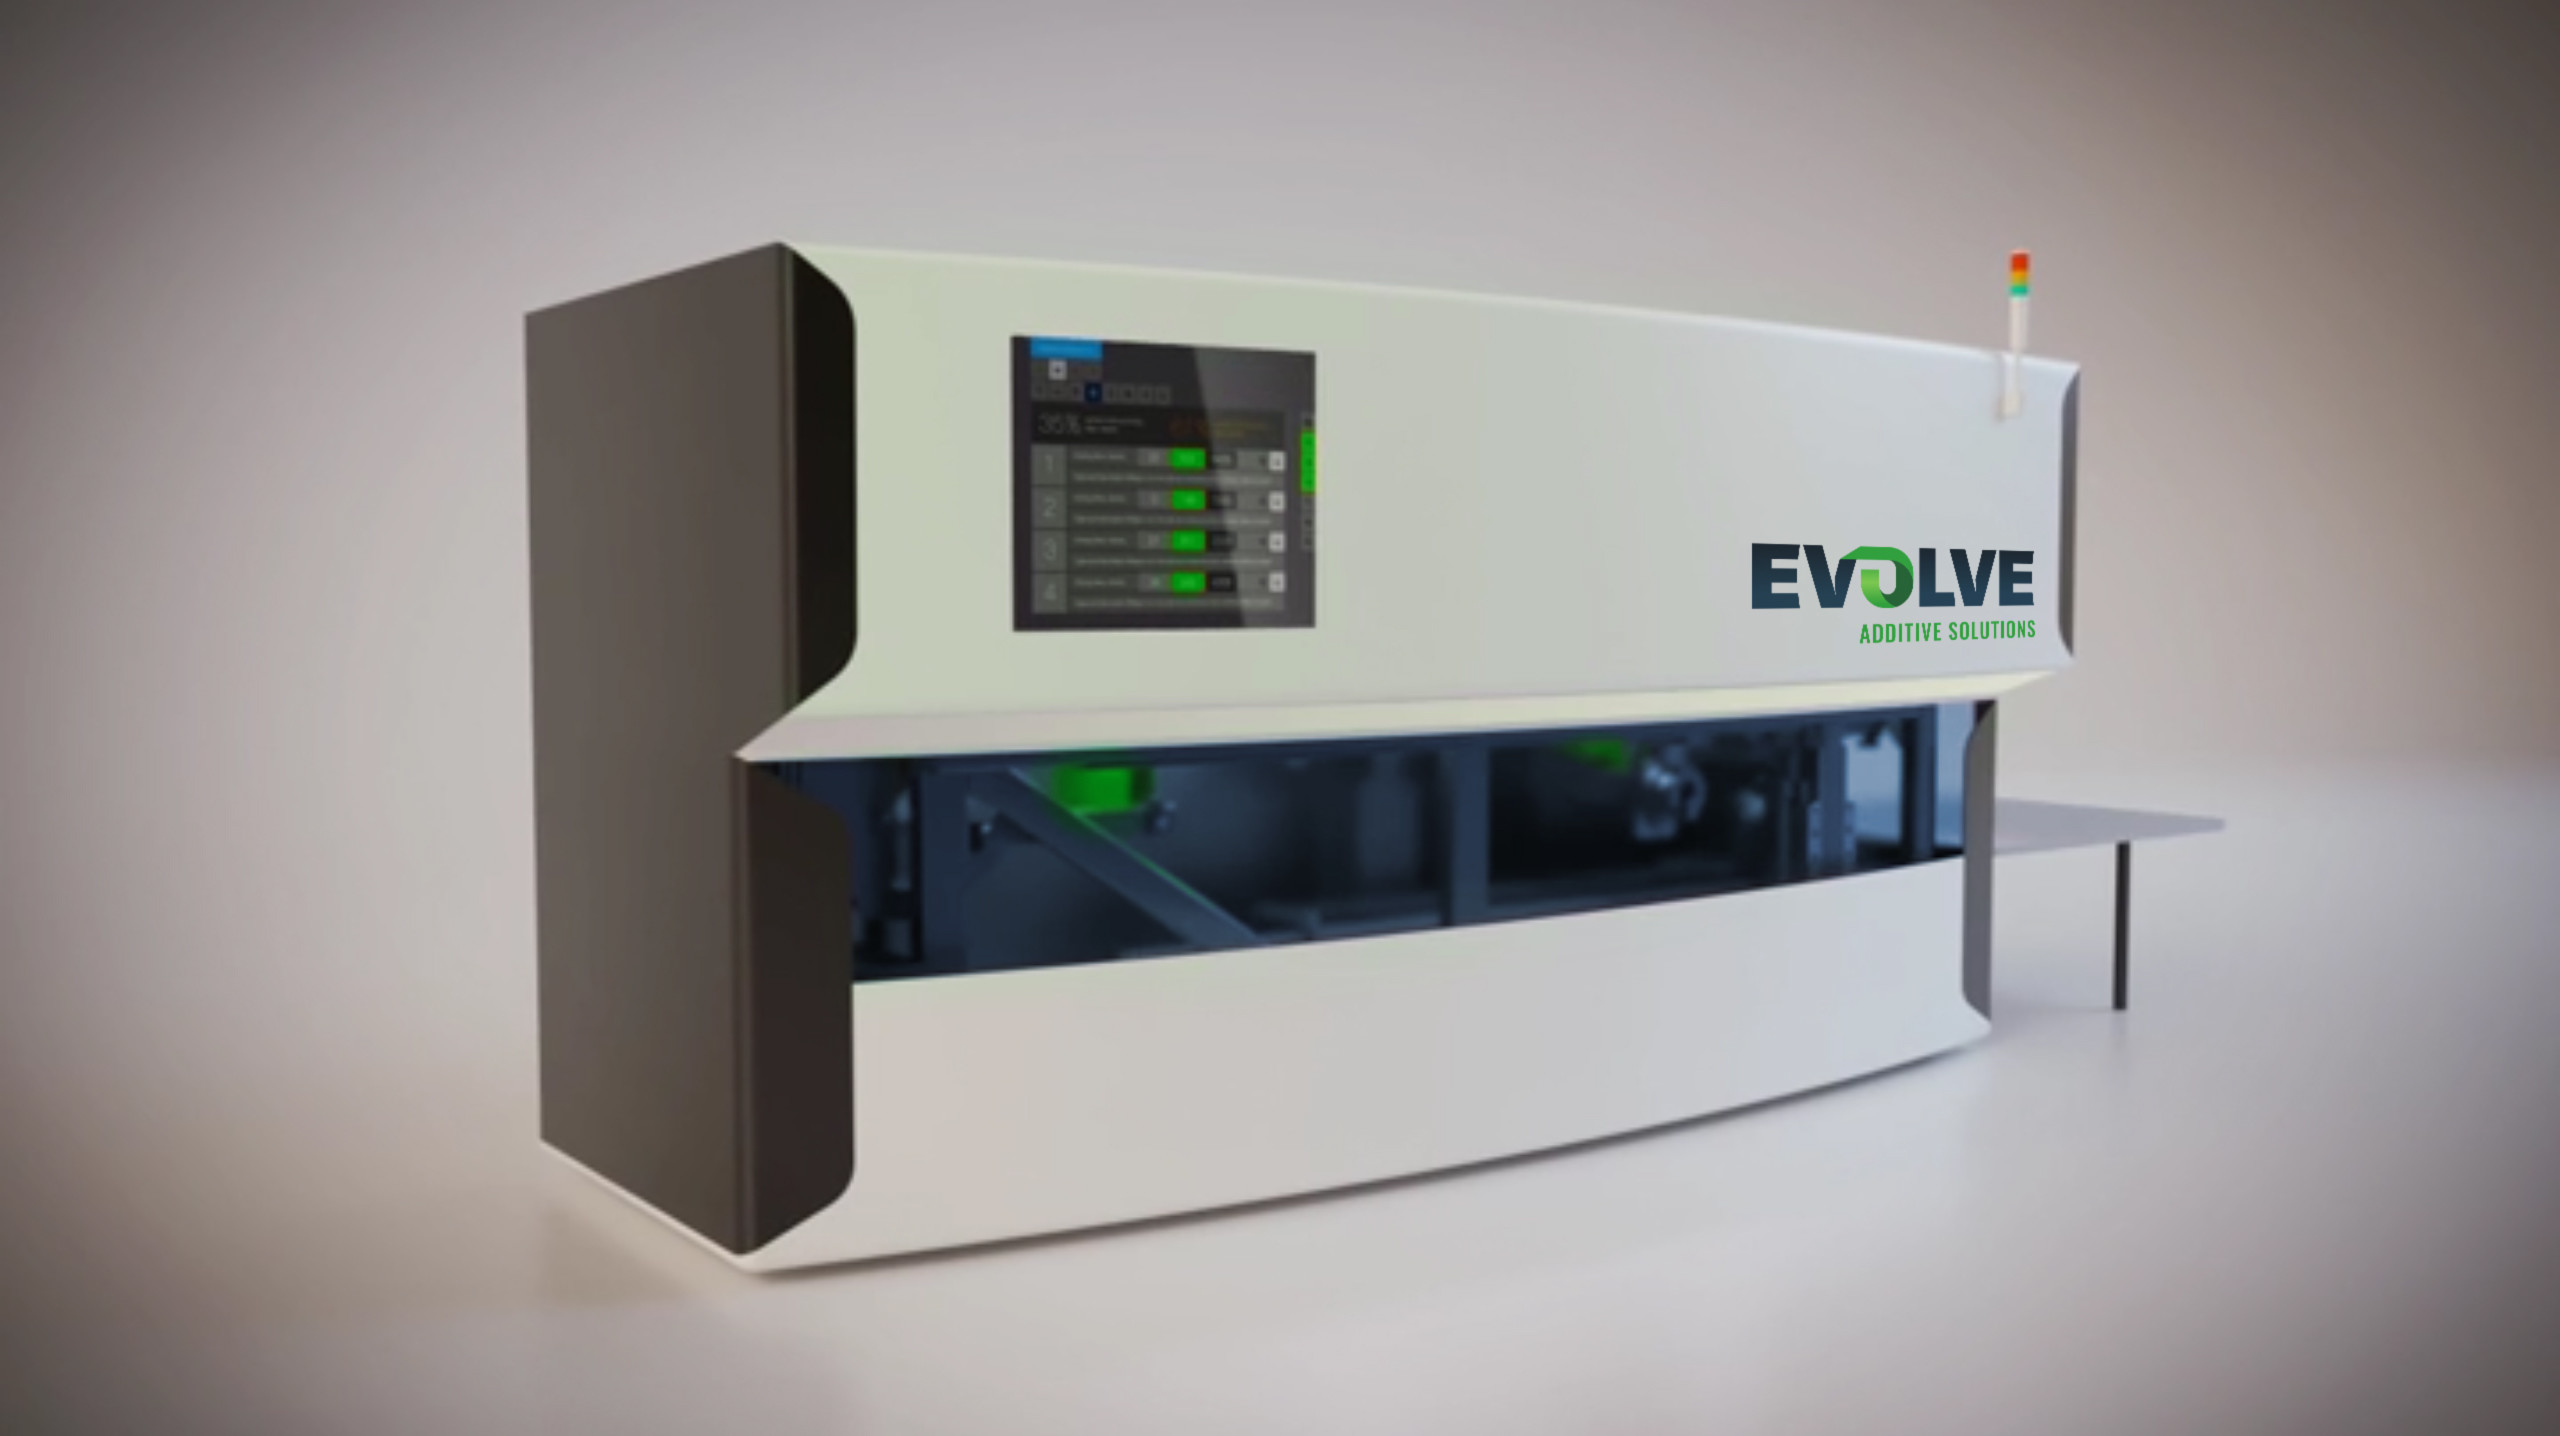 The Evolve STEP 3D printing system. Photo via Evolve.